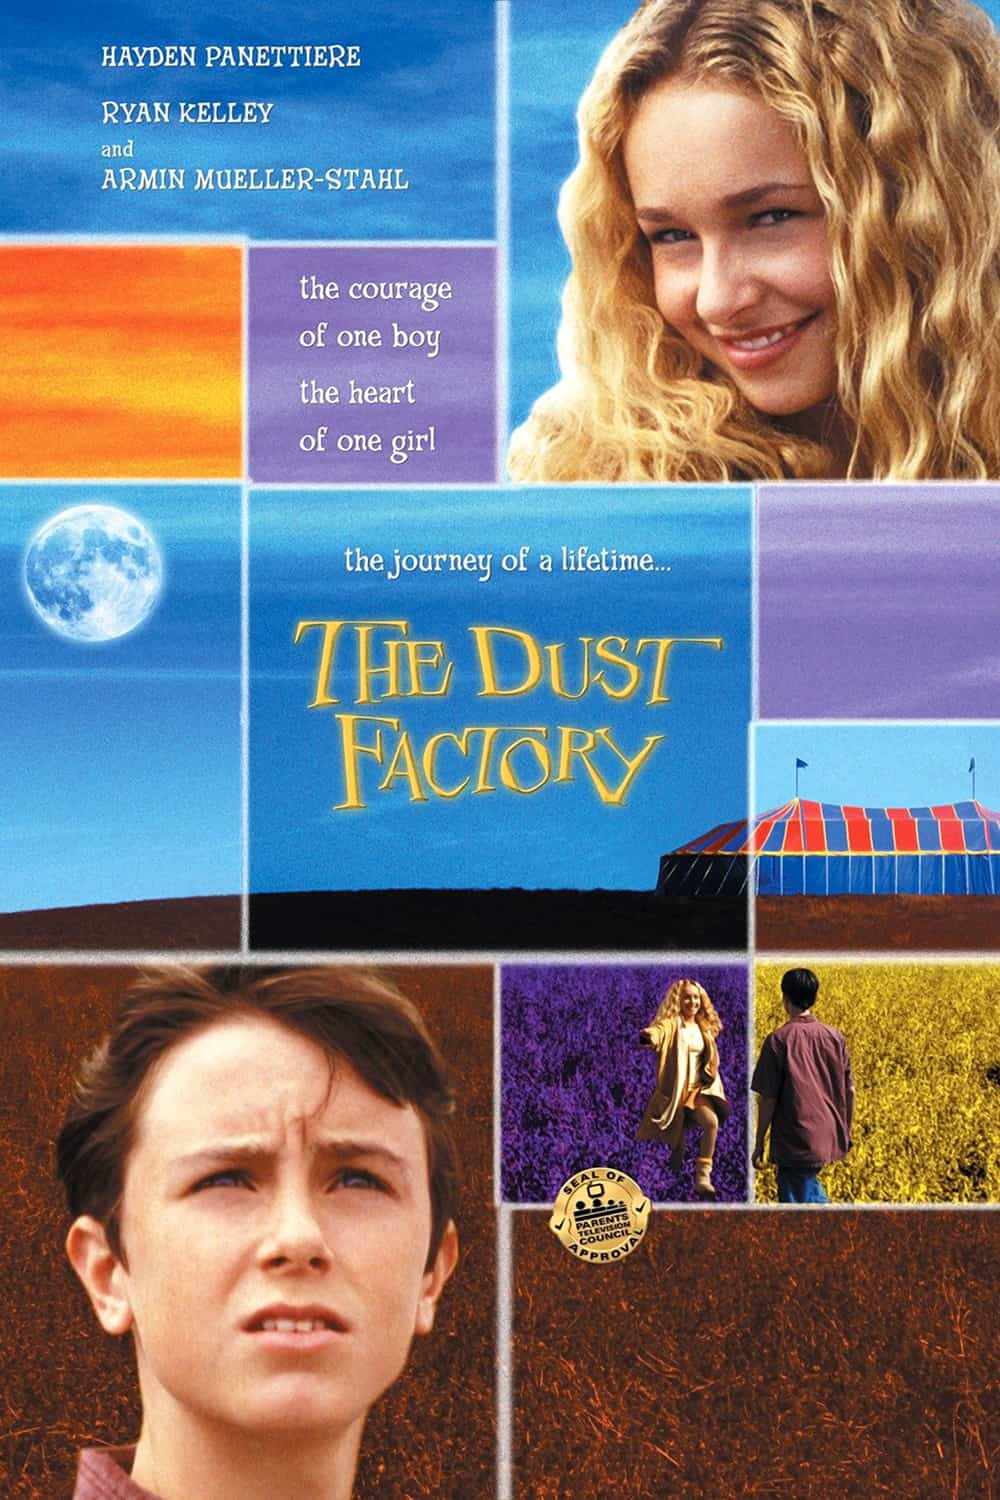 The Dust Factory, 2004